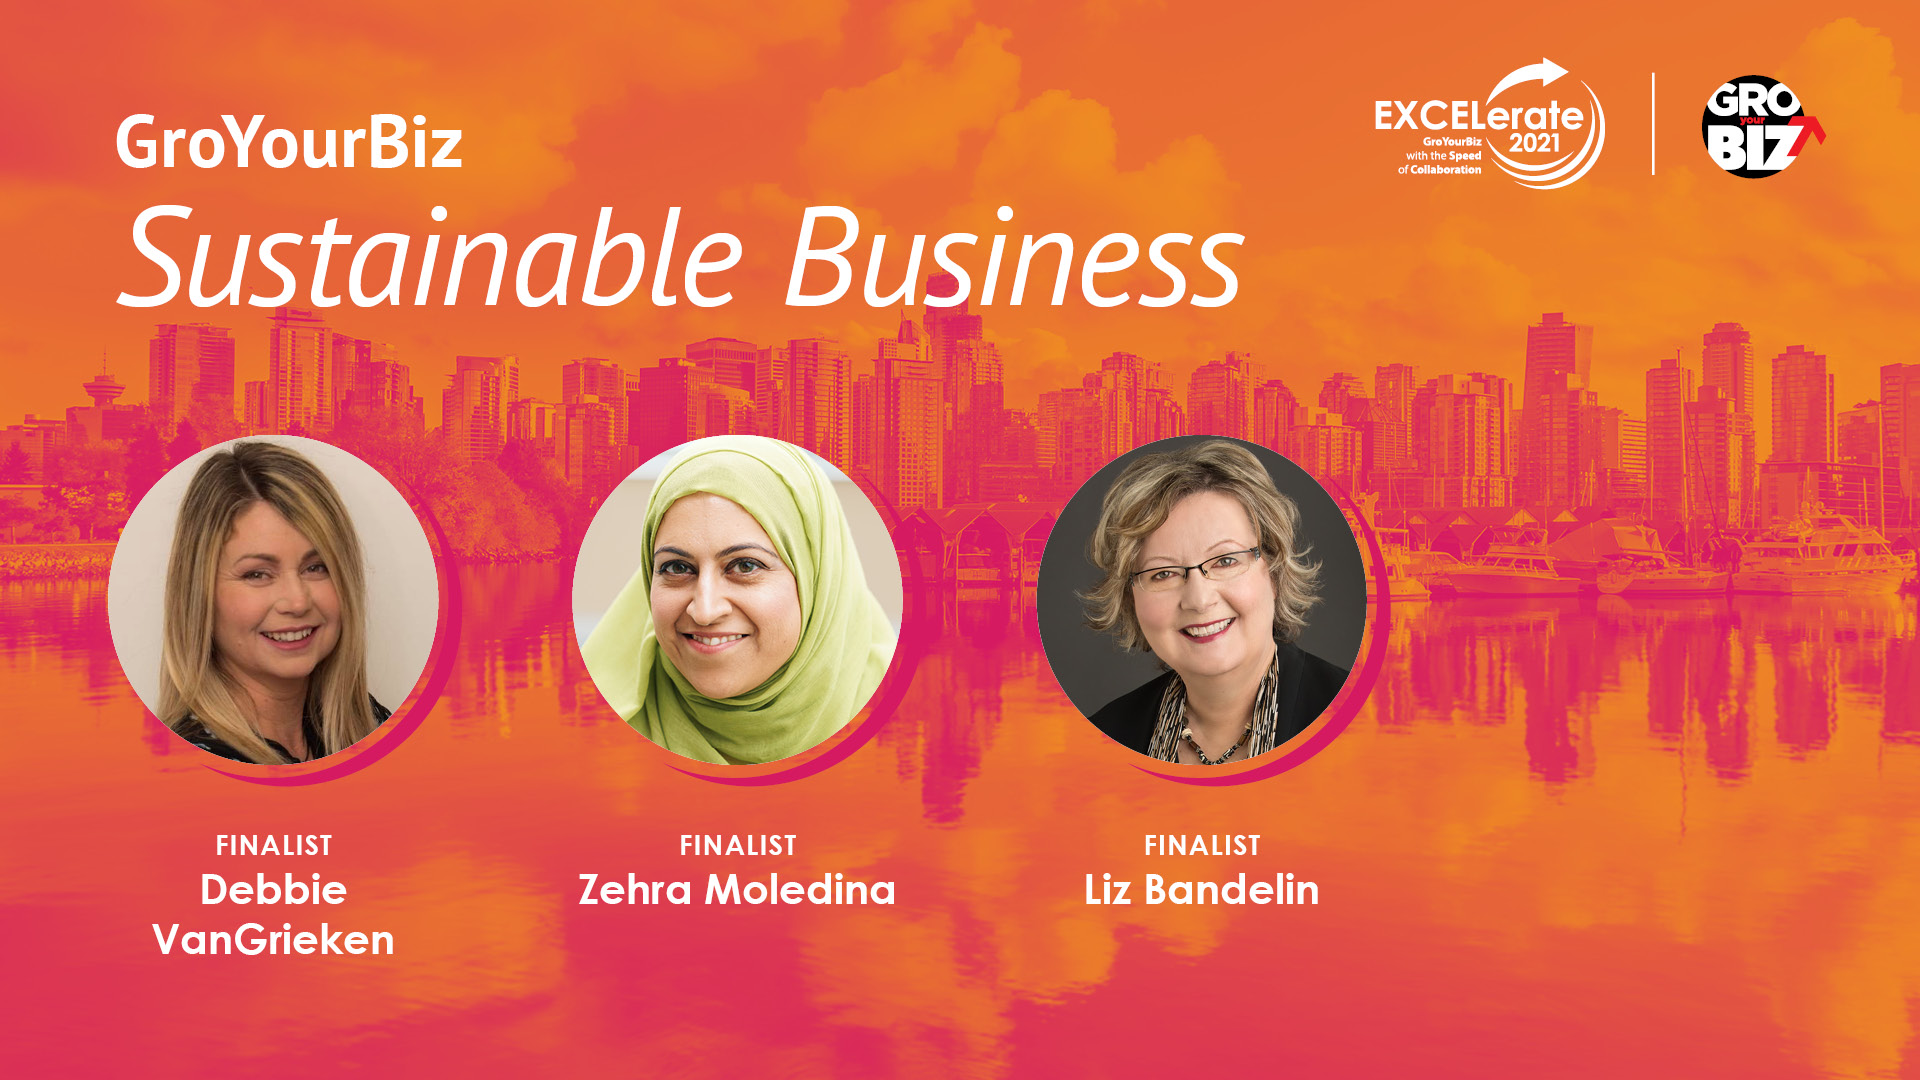 GroYourBiz Sustainable Business Award Finalists